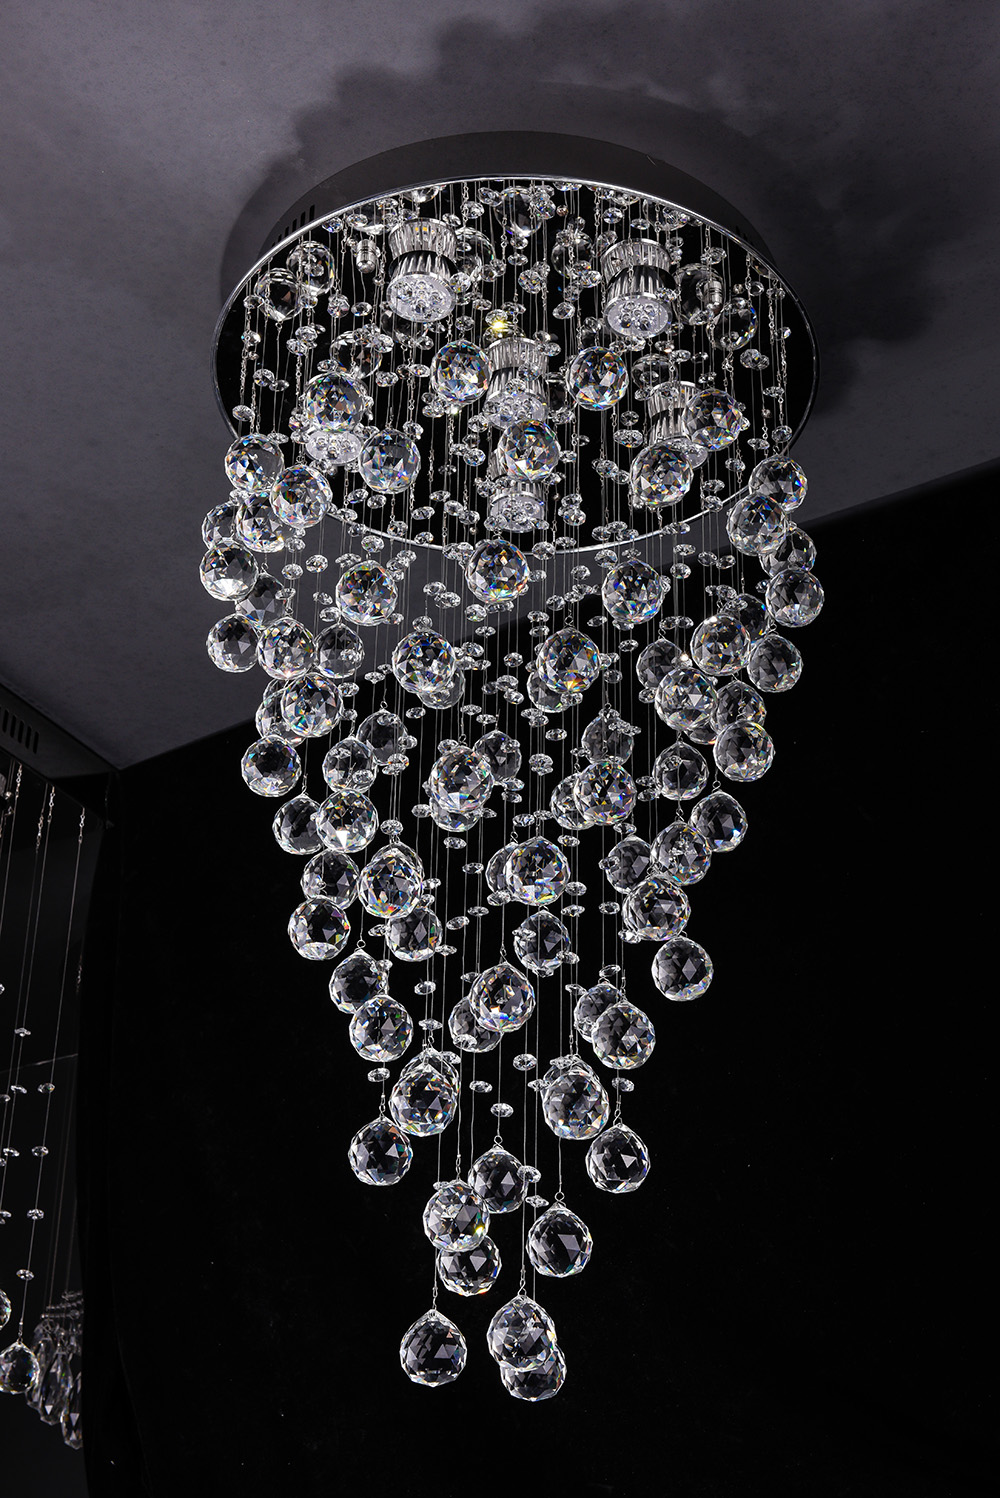 "Modern Contemporary Round Chandelier""Rain Drop"" Chandeliers Lighting with Crystal Balls W 18"" X H 32""